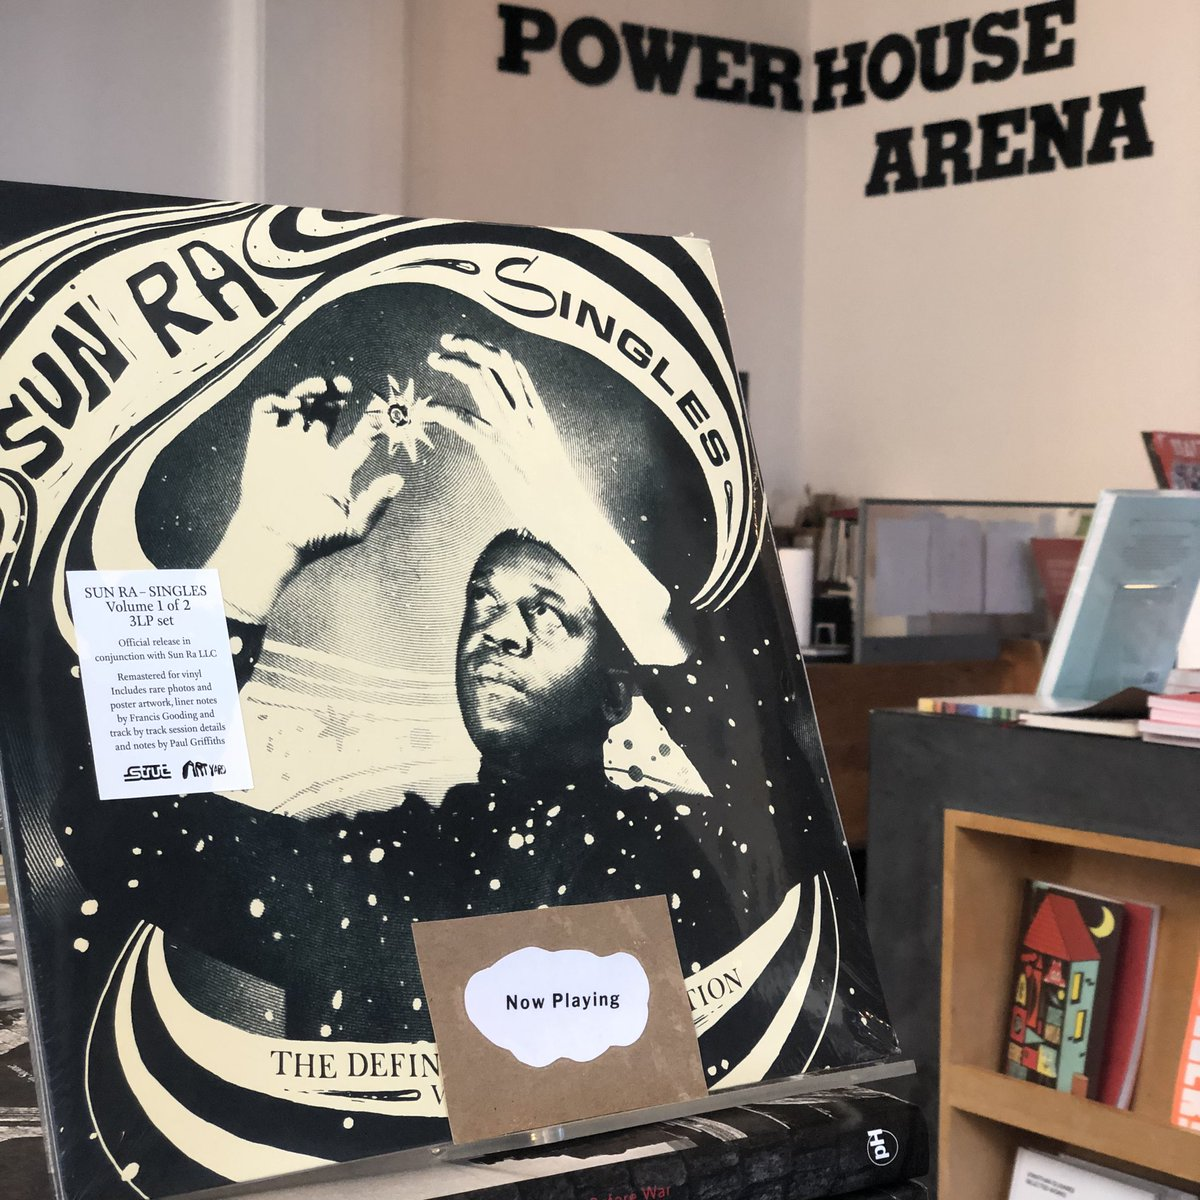 POWERHOUSEArena Did you know that we sell vinyl? Dust off